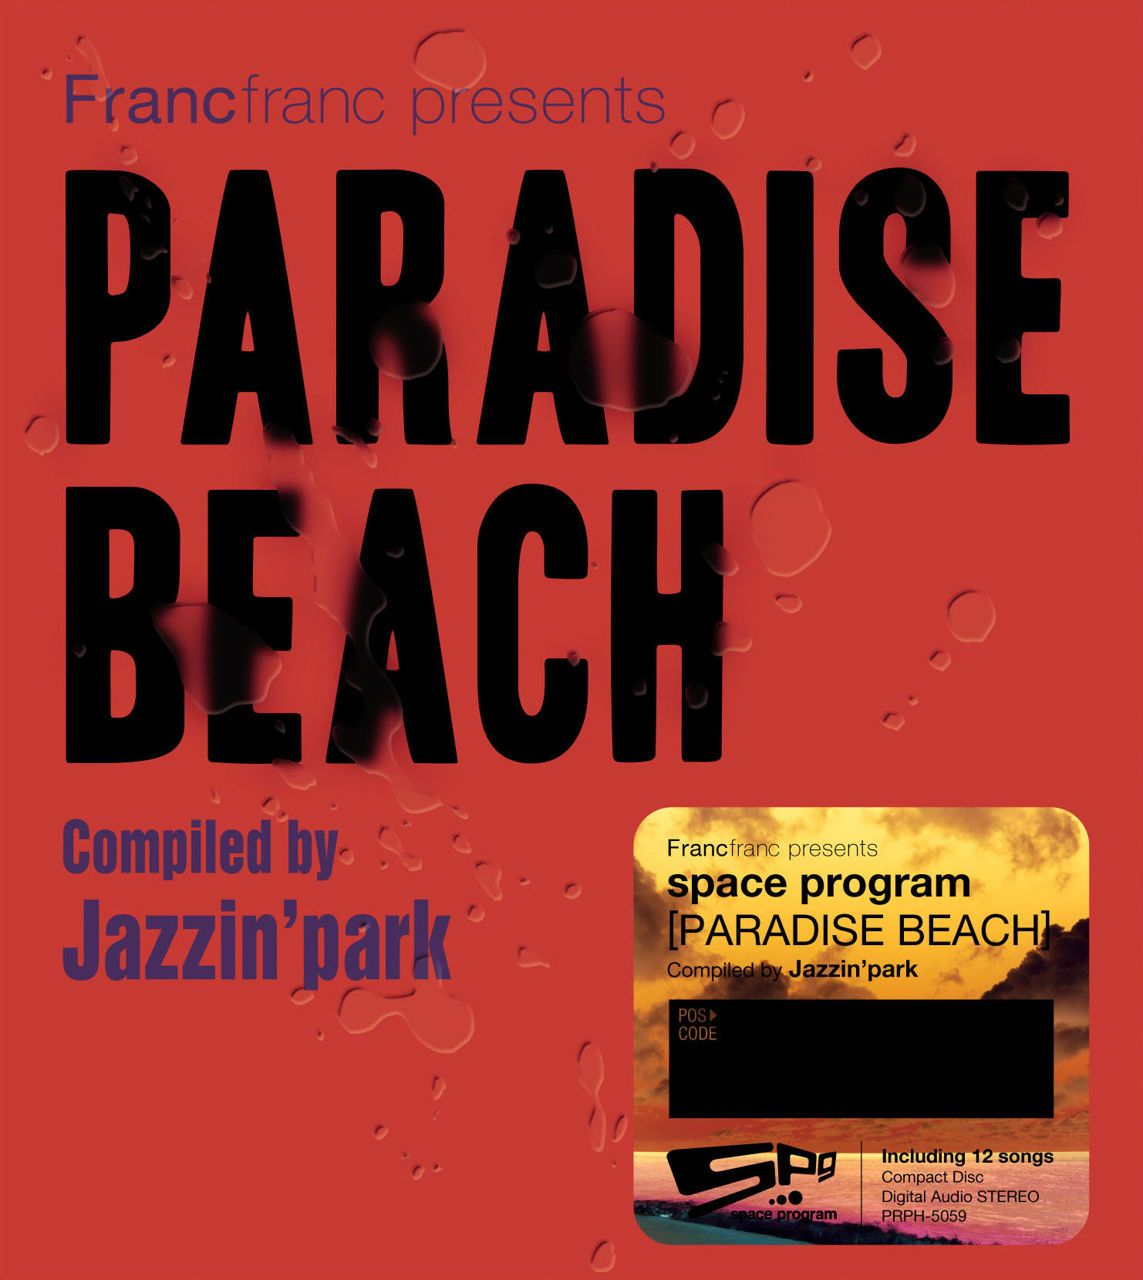 Francfranc presents space program [PARADISE BEACH]